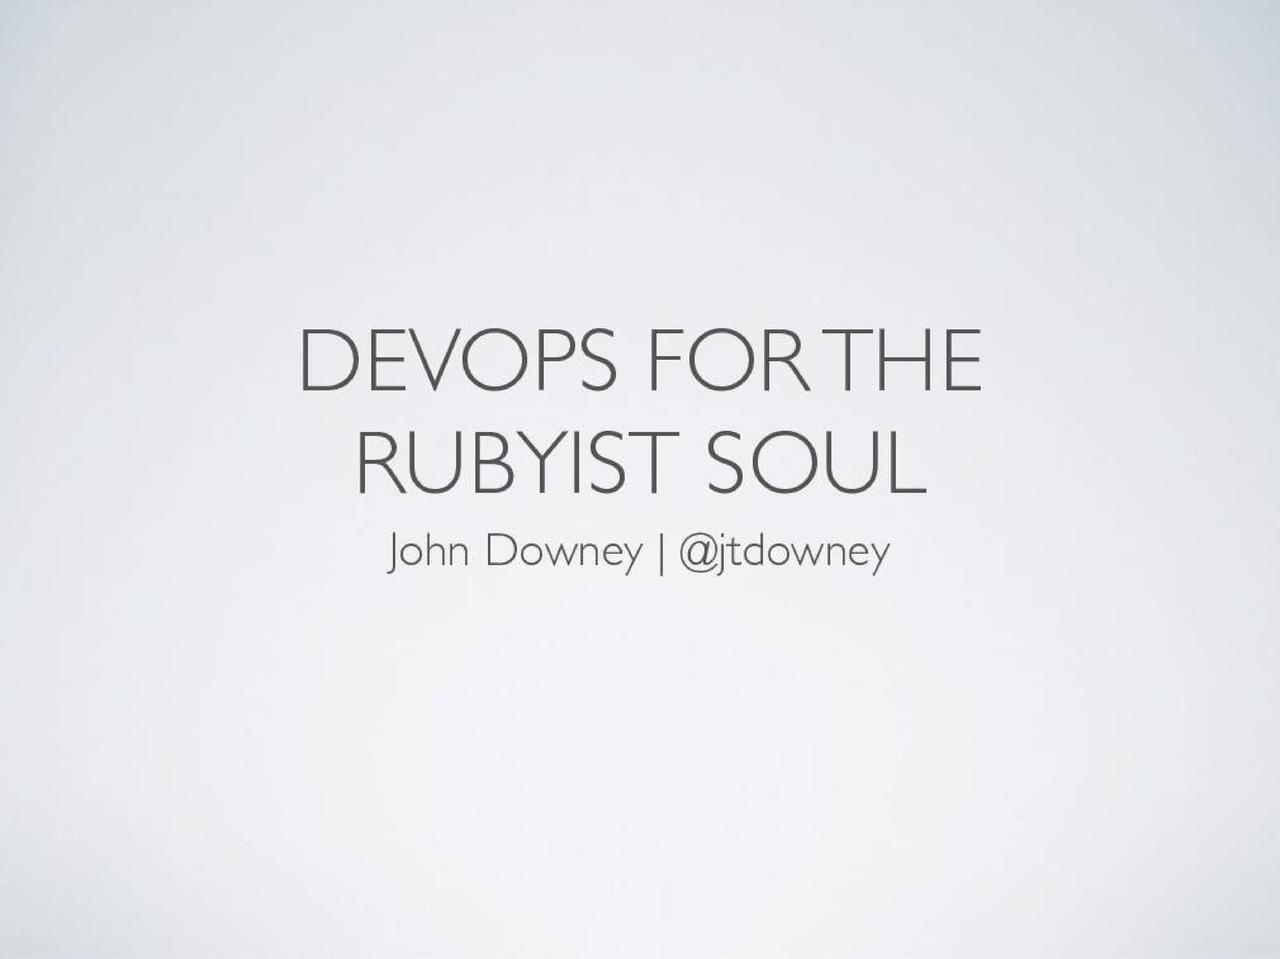 DevOps for the Rubyist Soul at Big Ruby Conf 2013